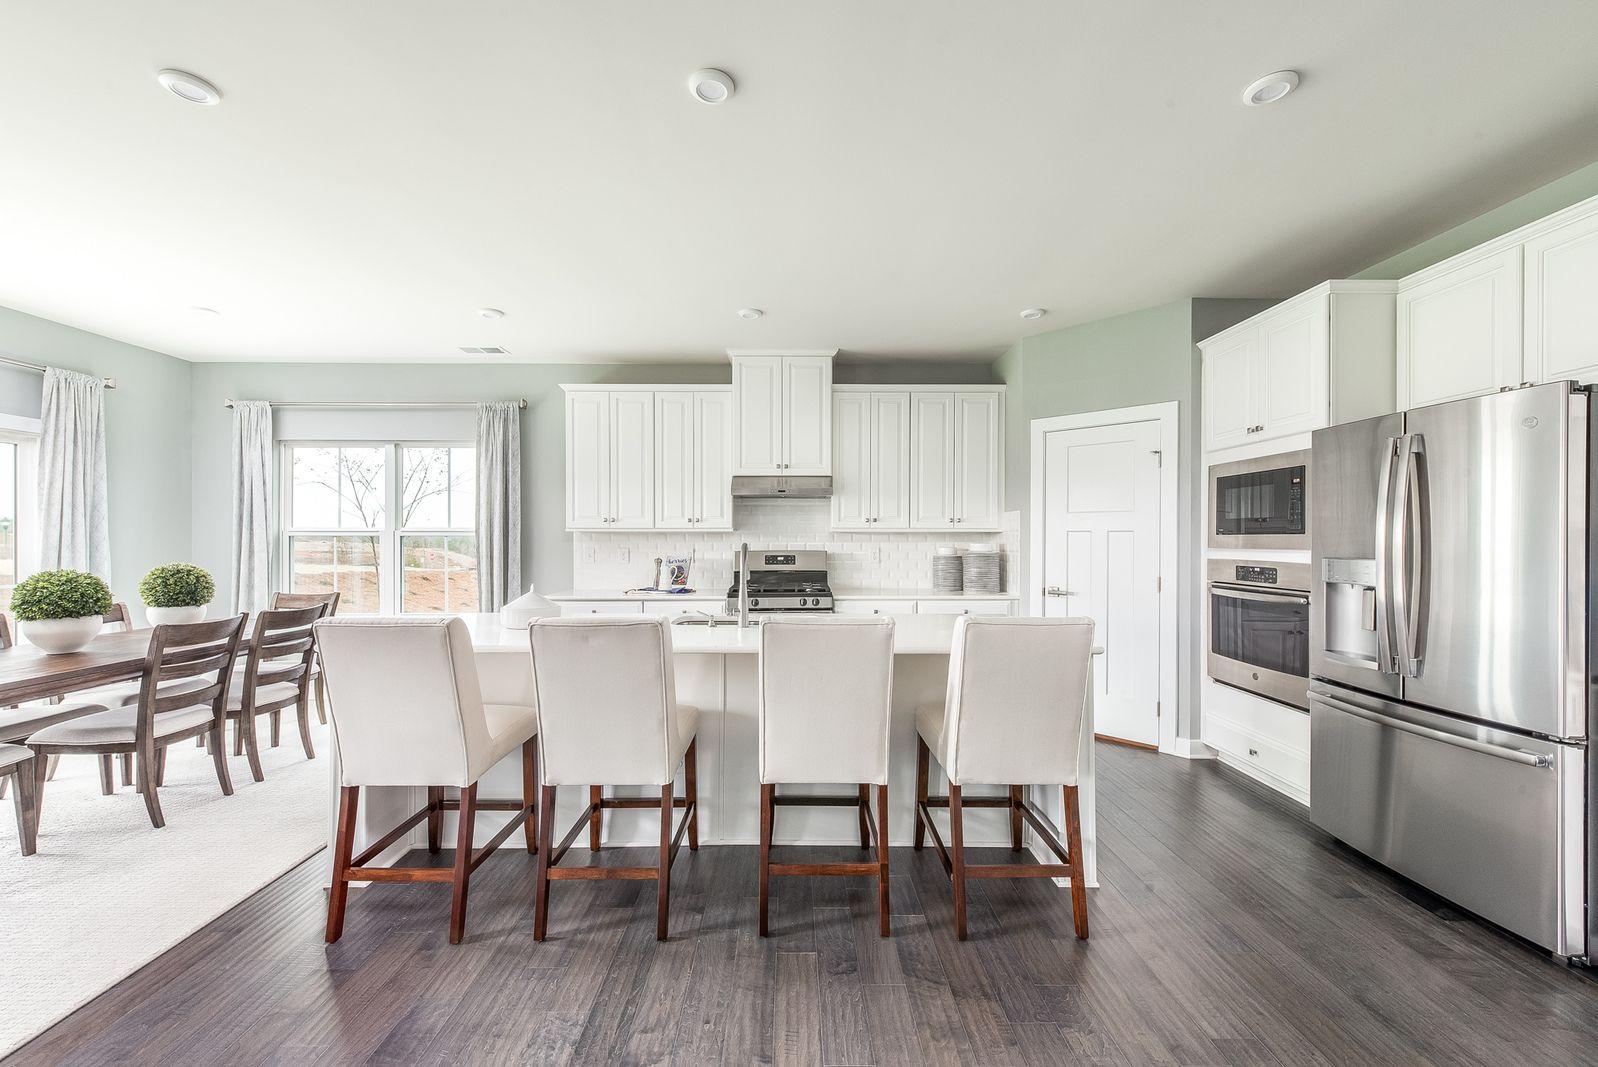 Kitchens include large islands and plenty of cabinet space